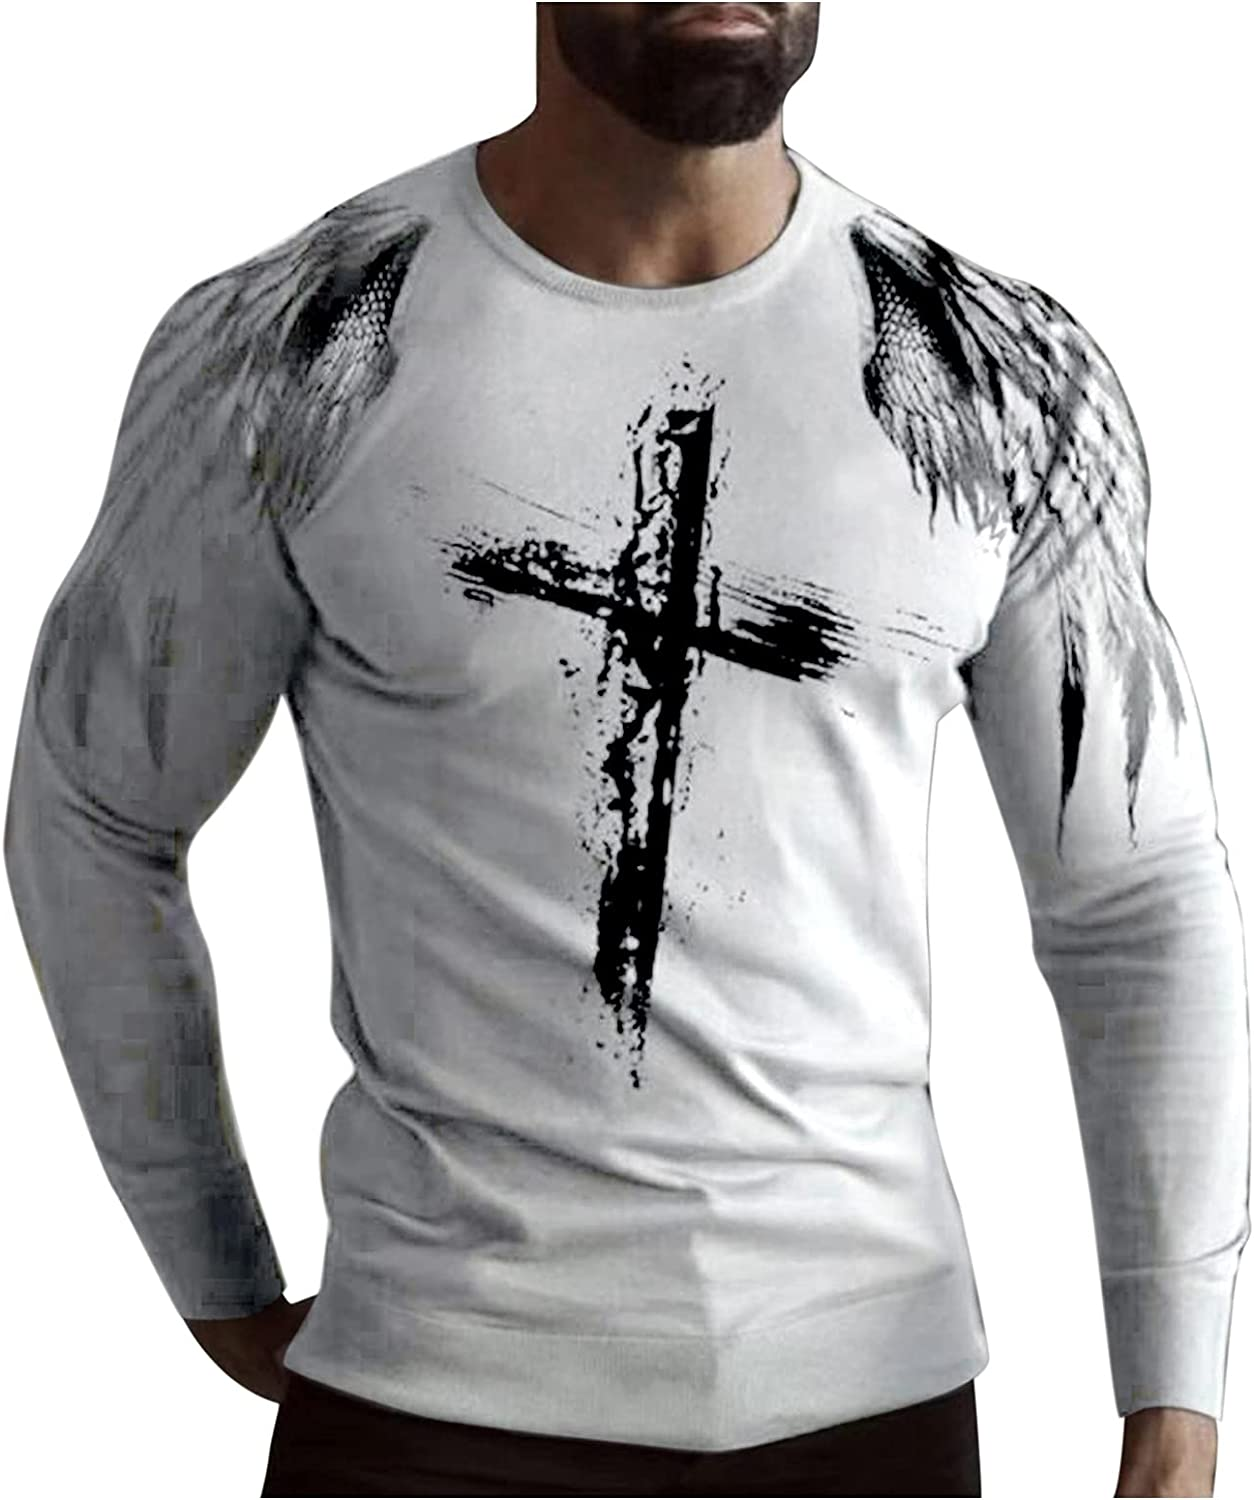 XXBR Soldier Long Sleeve T-shirts for Mens, Fall Street Faith Jesus Cross Print Workout Athletics Crewneck Tee Tops